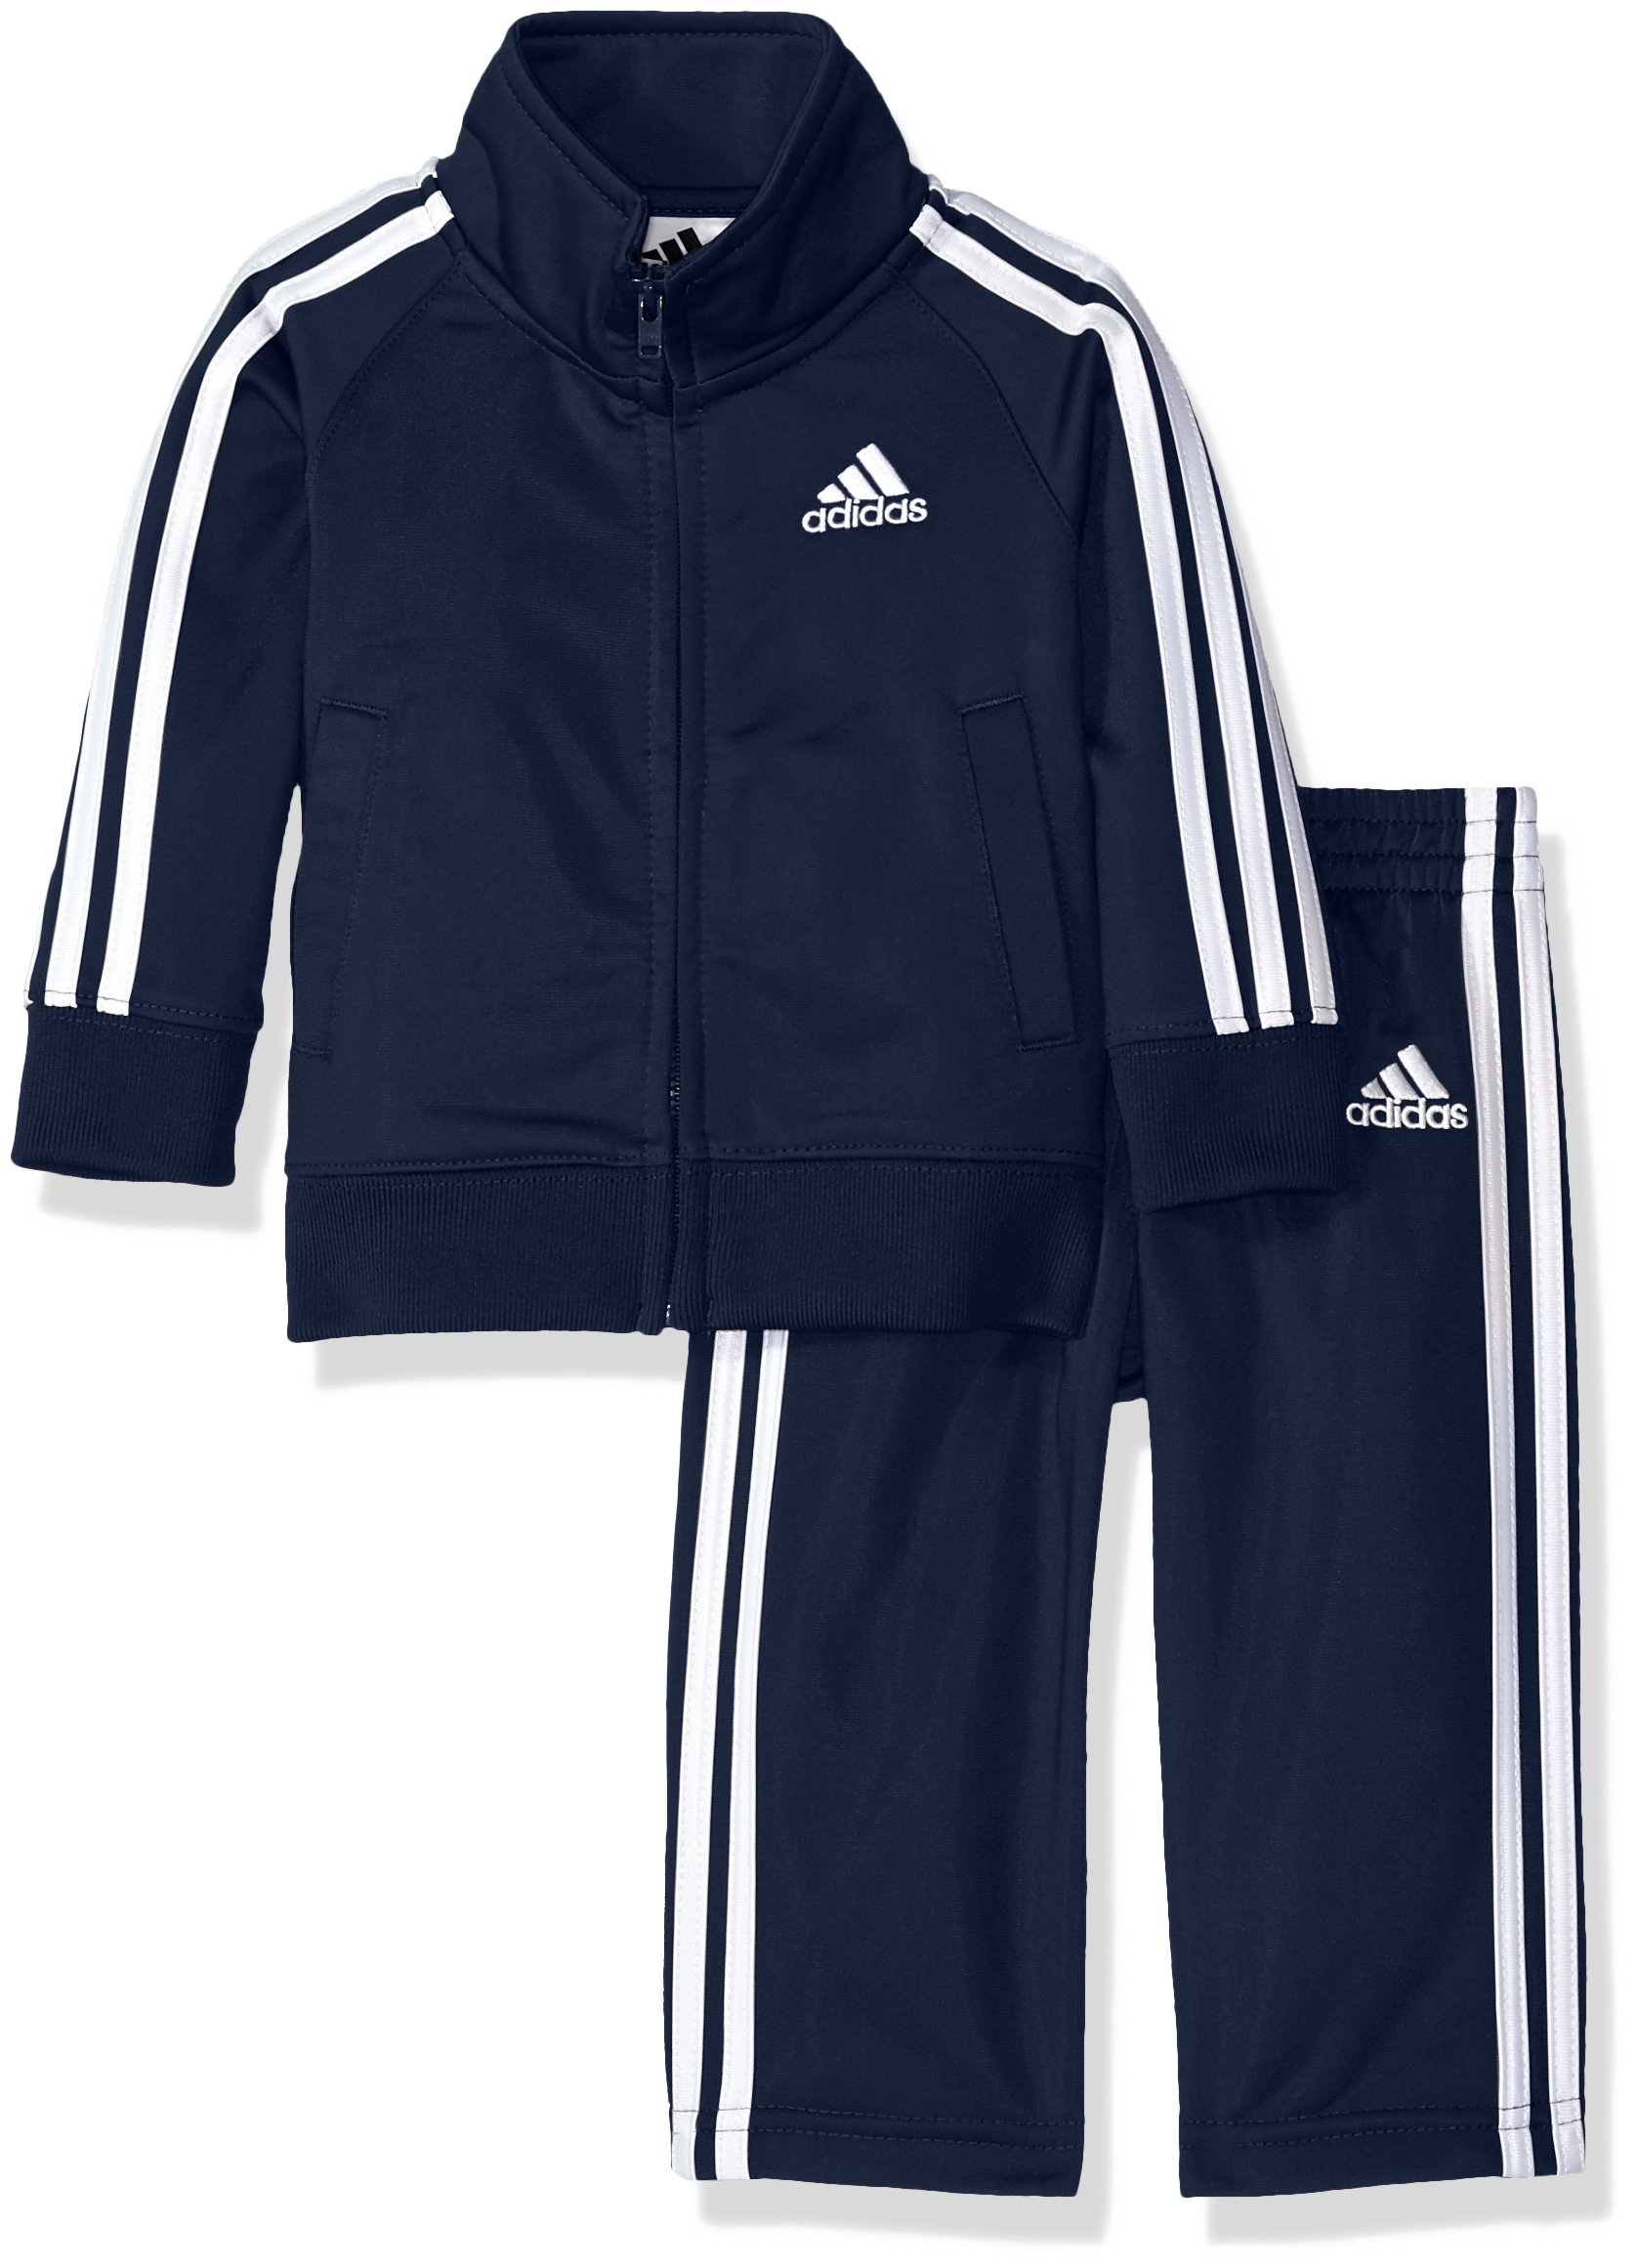 adidas Boys' Baby Tricot Jacket and Pant Set, Collegiate Navy, 12M